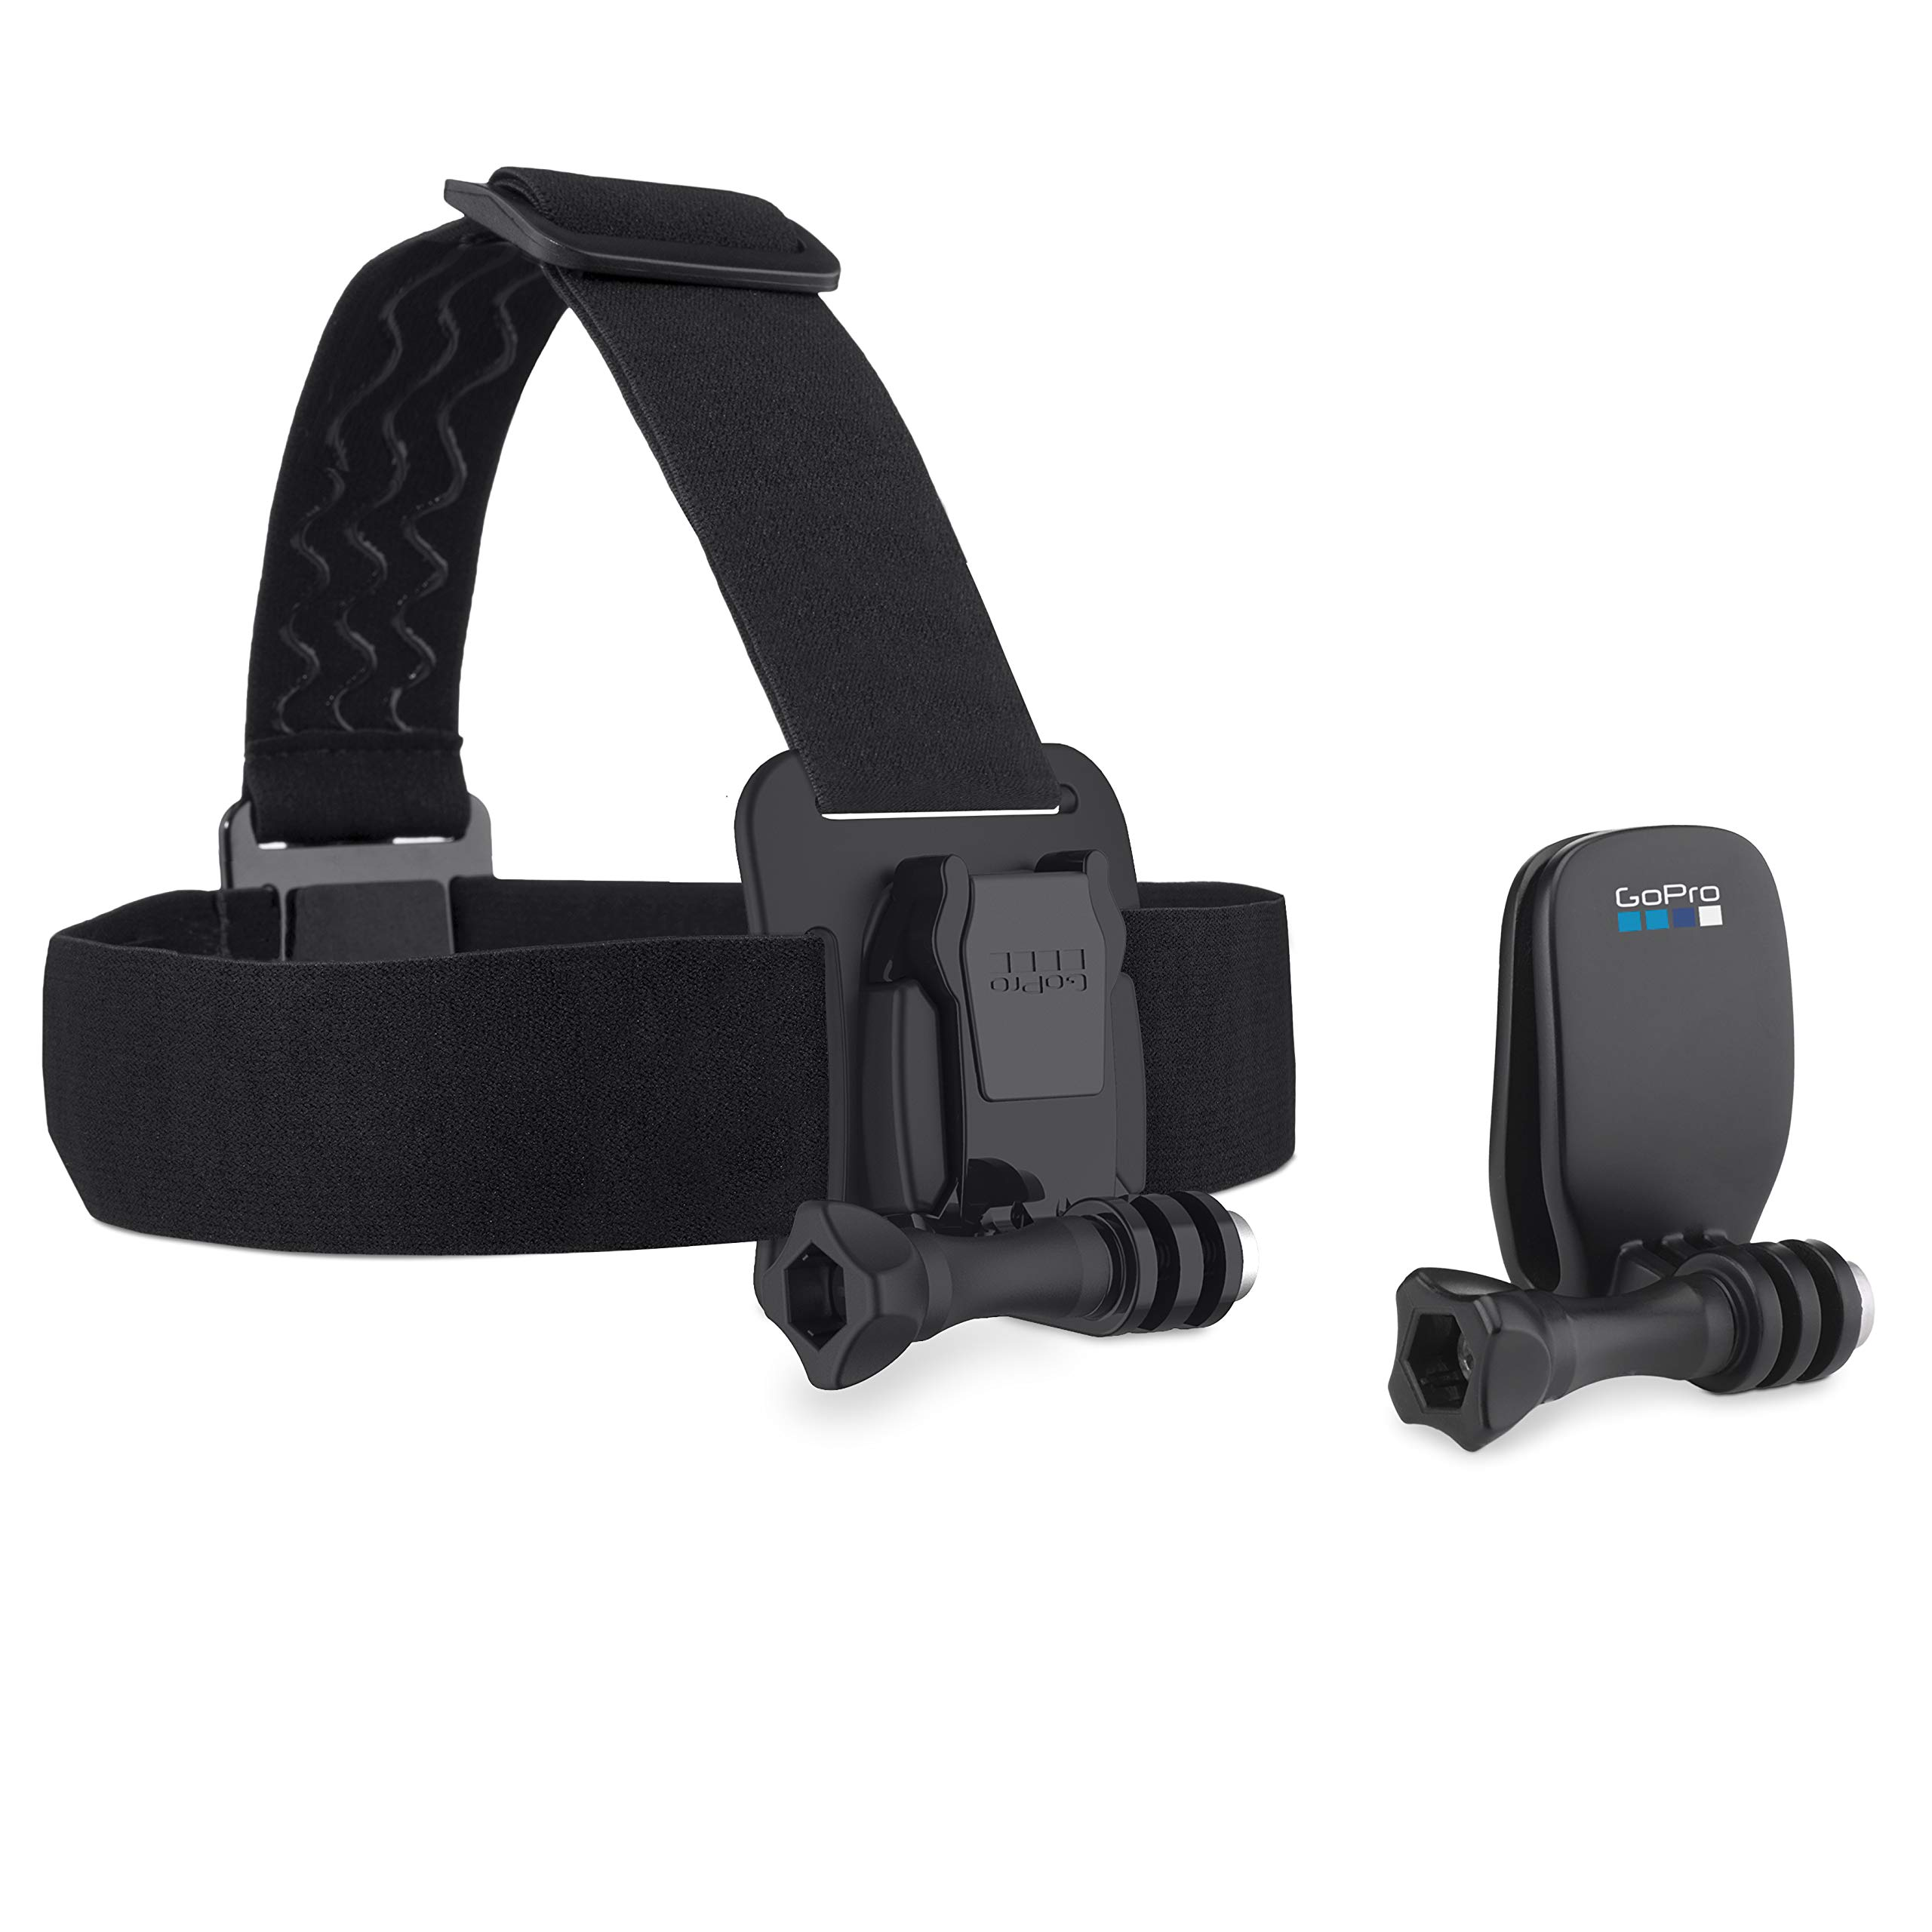 GoPro Head Strap + QuickClip (All GoPro Cameras) - Official GoPro Mount by GoPro